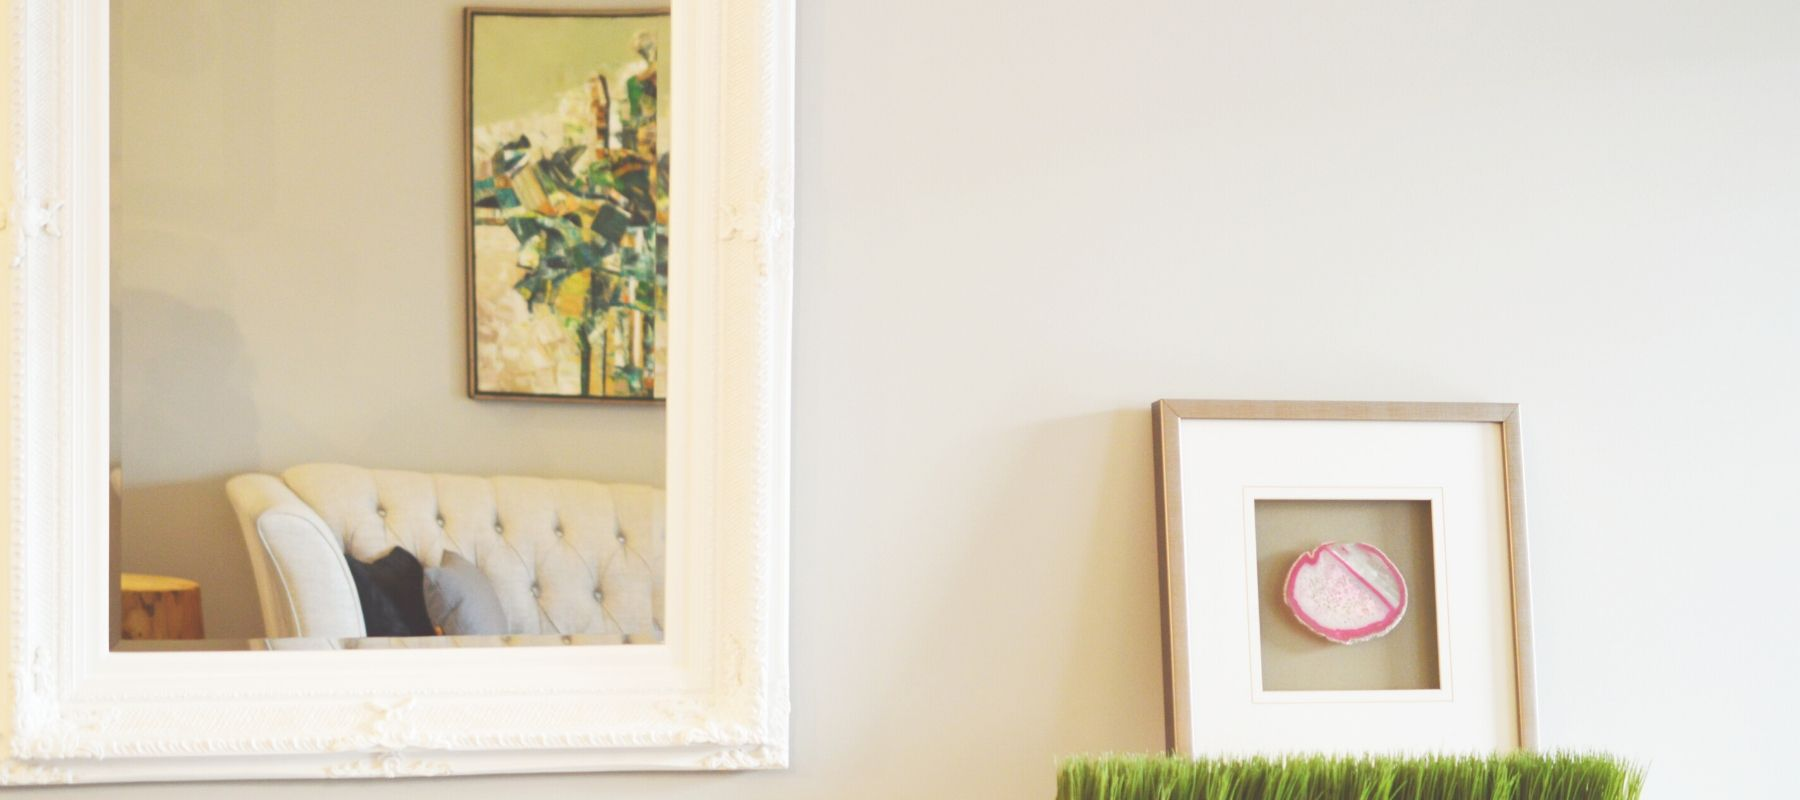 White framed wall mirror